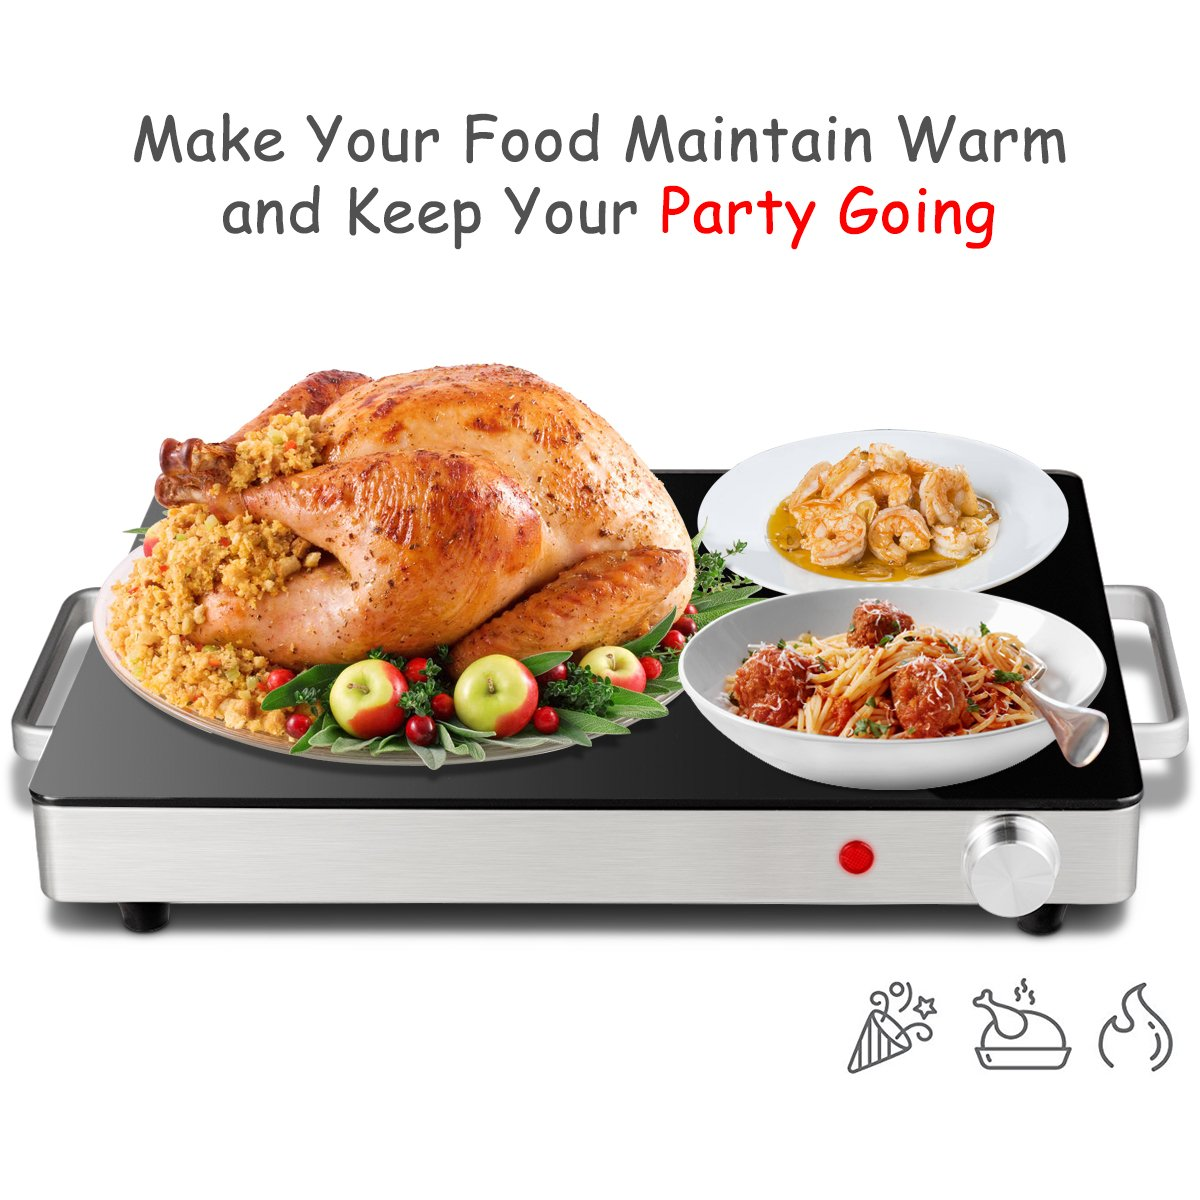 Giantex Warming Tray with Adjustable Temperature Control Perfect For Buffets, Restaurants and Home Dinners by Giantex (Image #4)